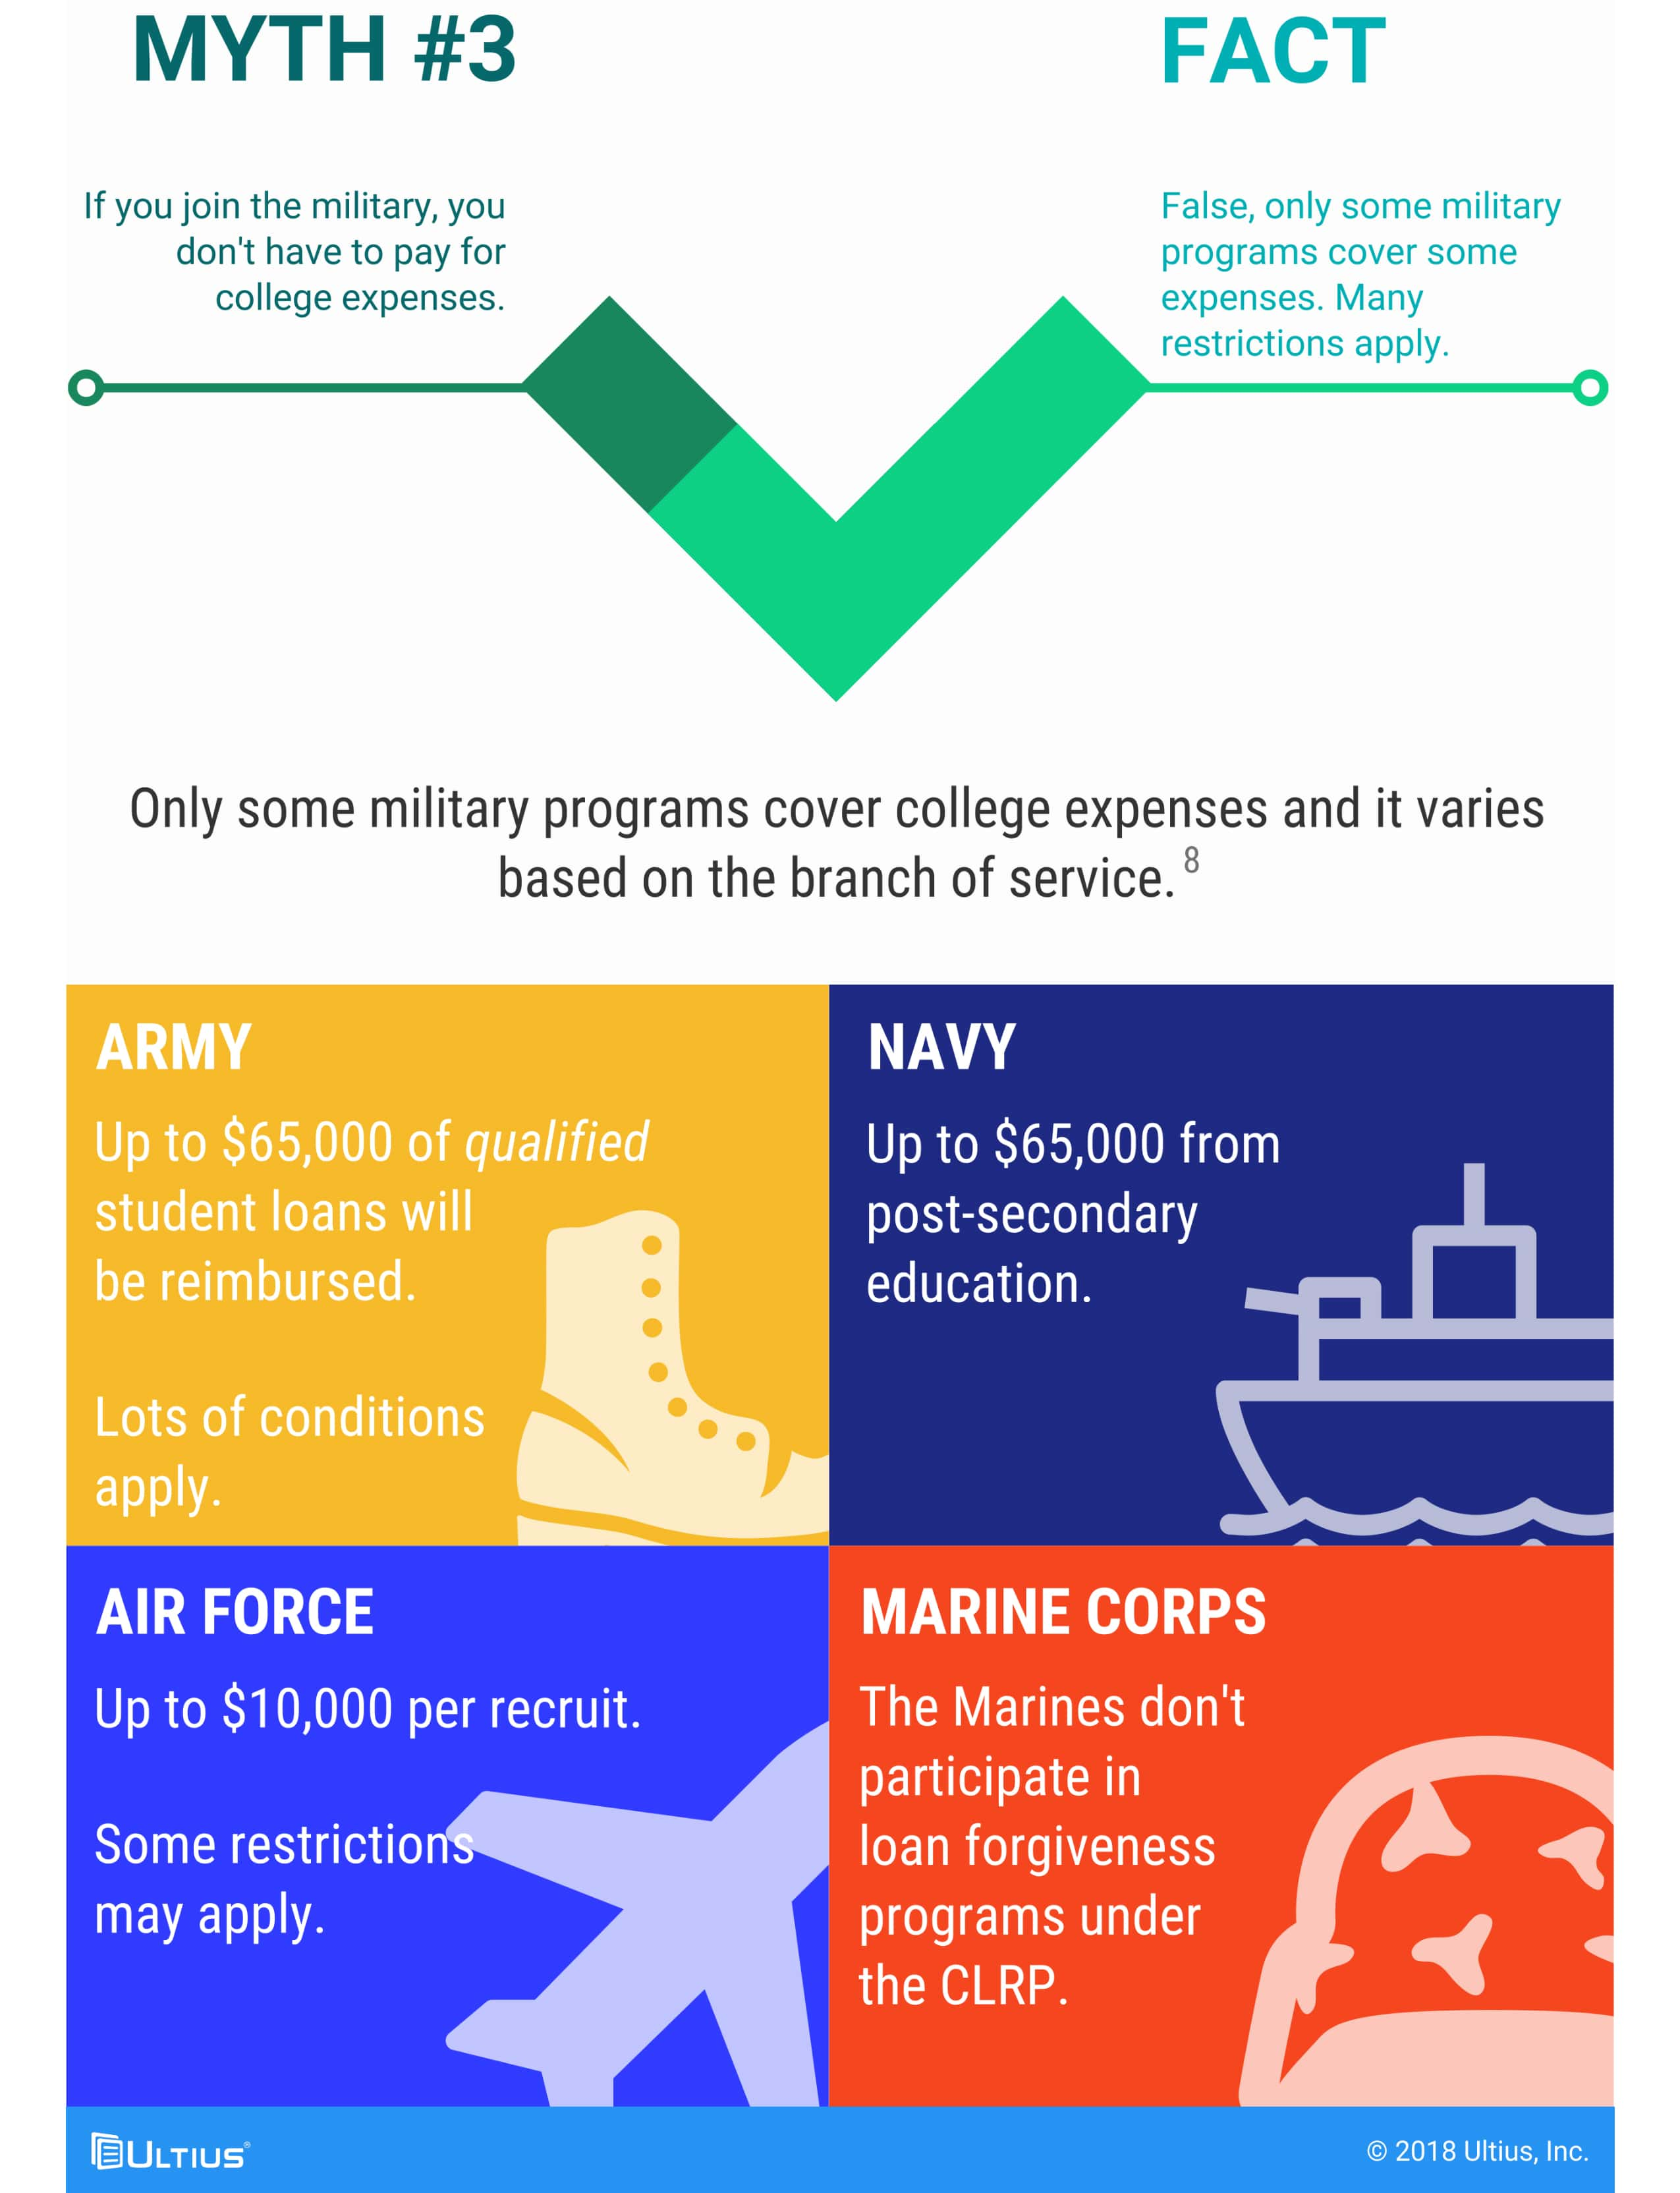 Clip about military myths and facts from larger infographic